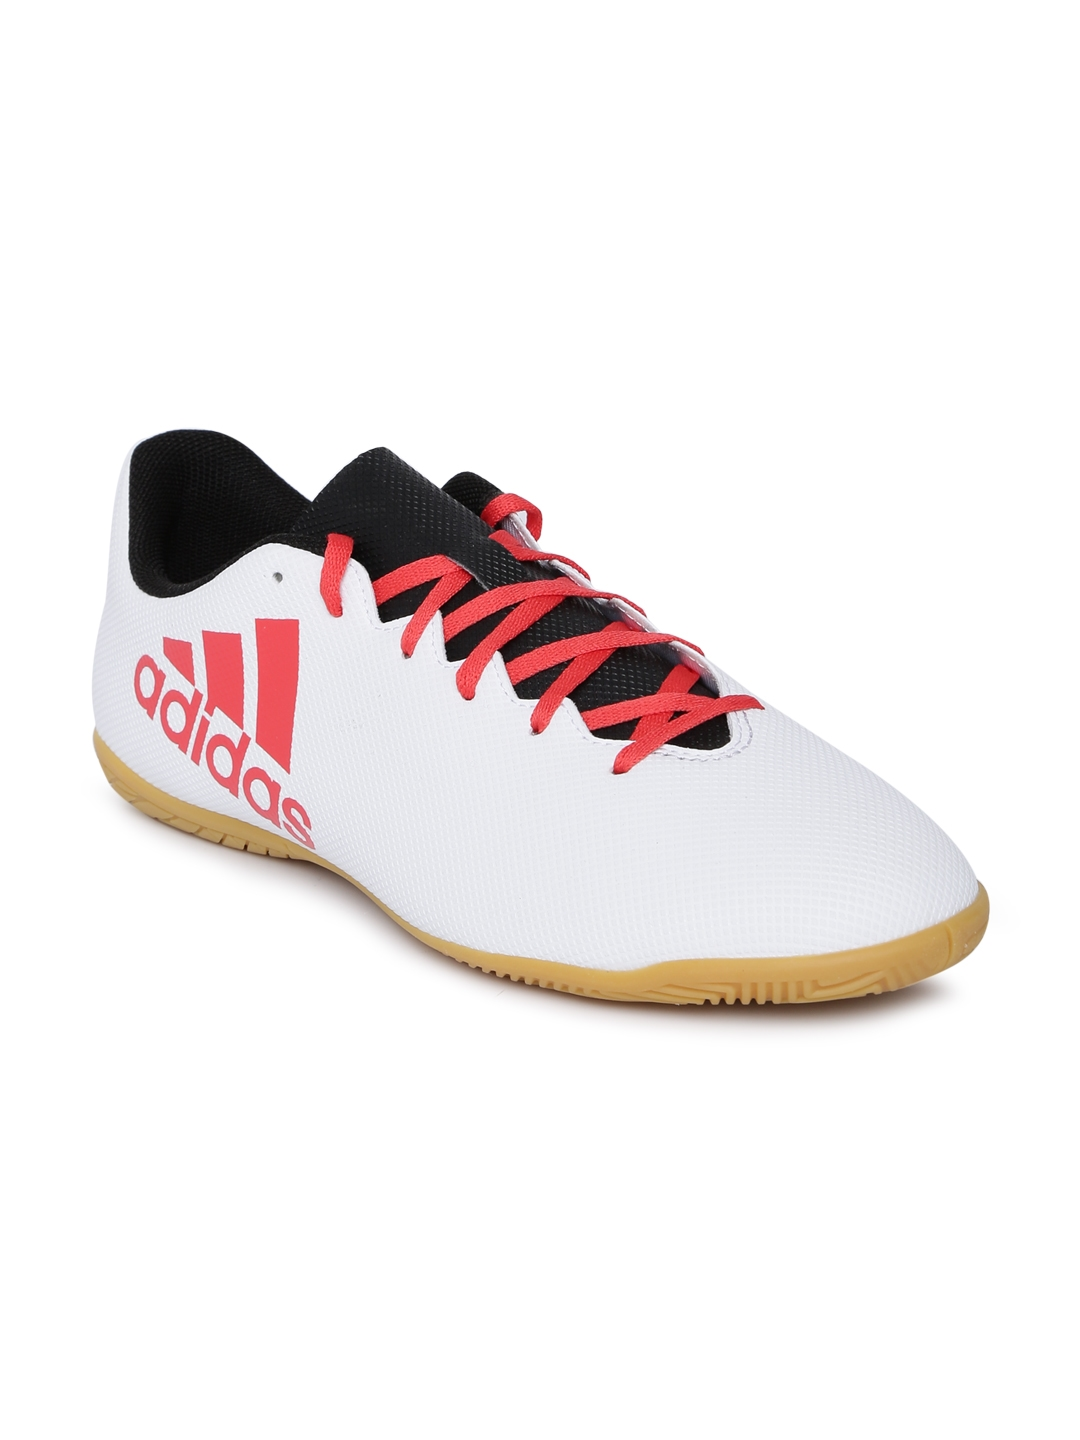 4c3558127 Buy ADIDAS Men White X TANGO 17.4 IN Football Shoes - Sports Shoes ...